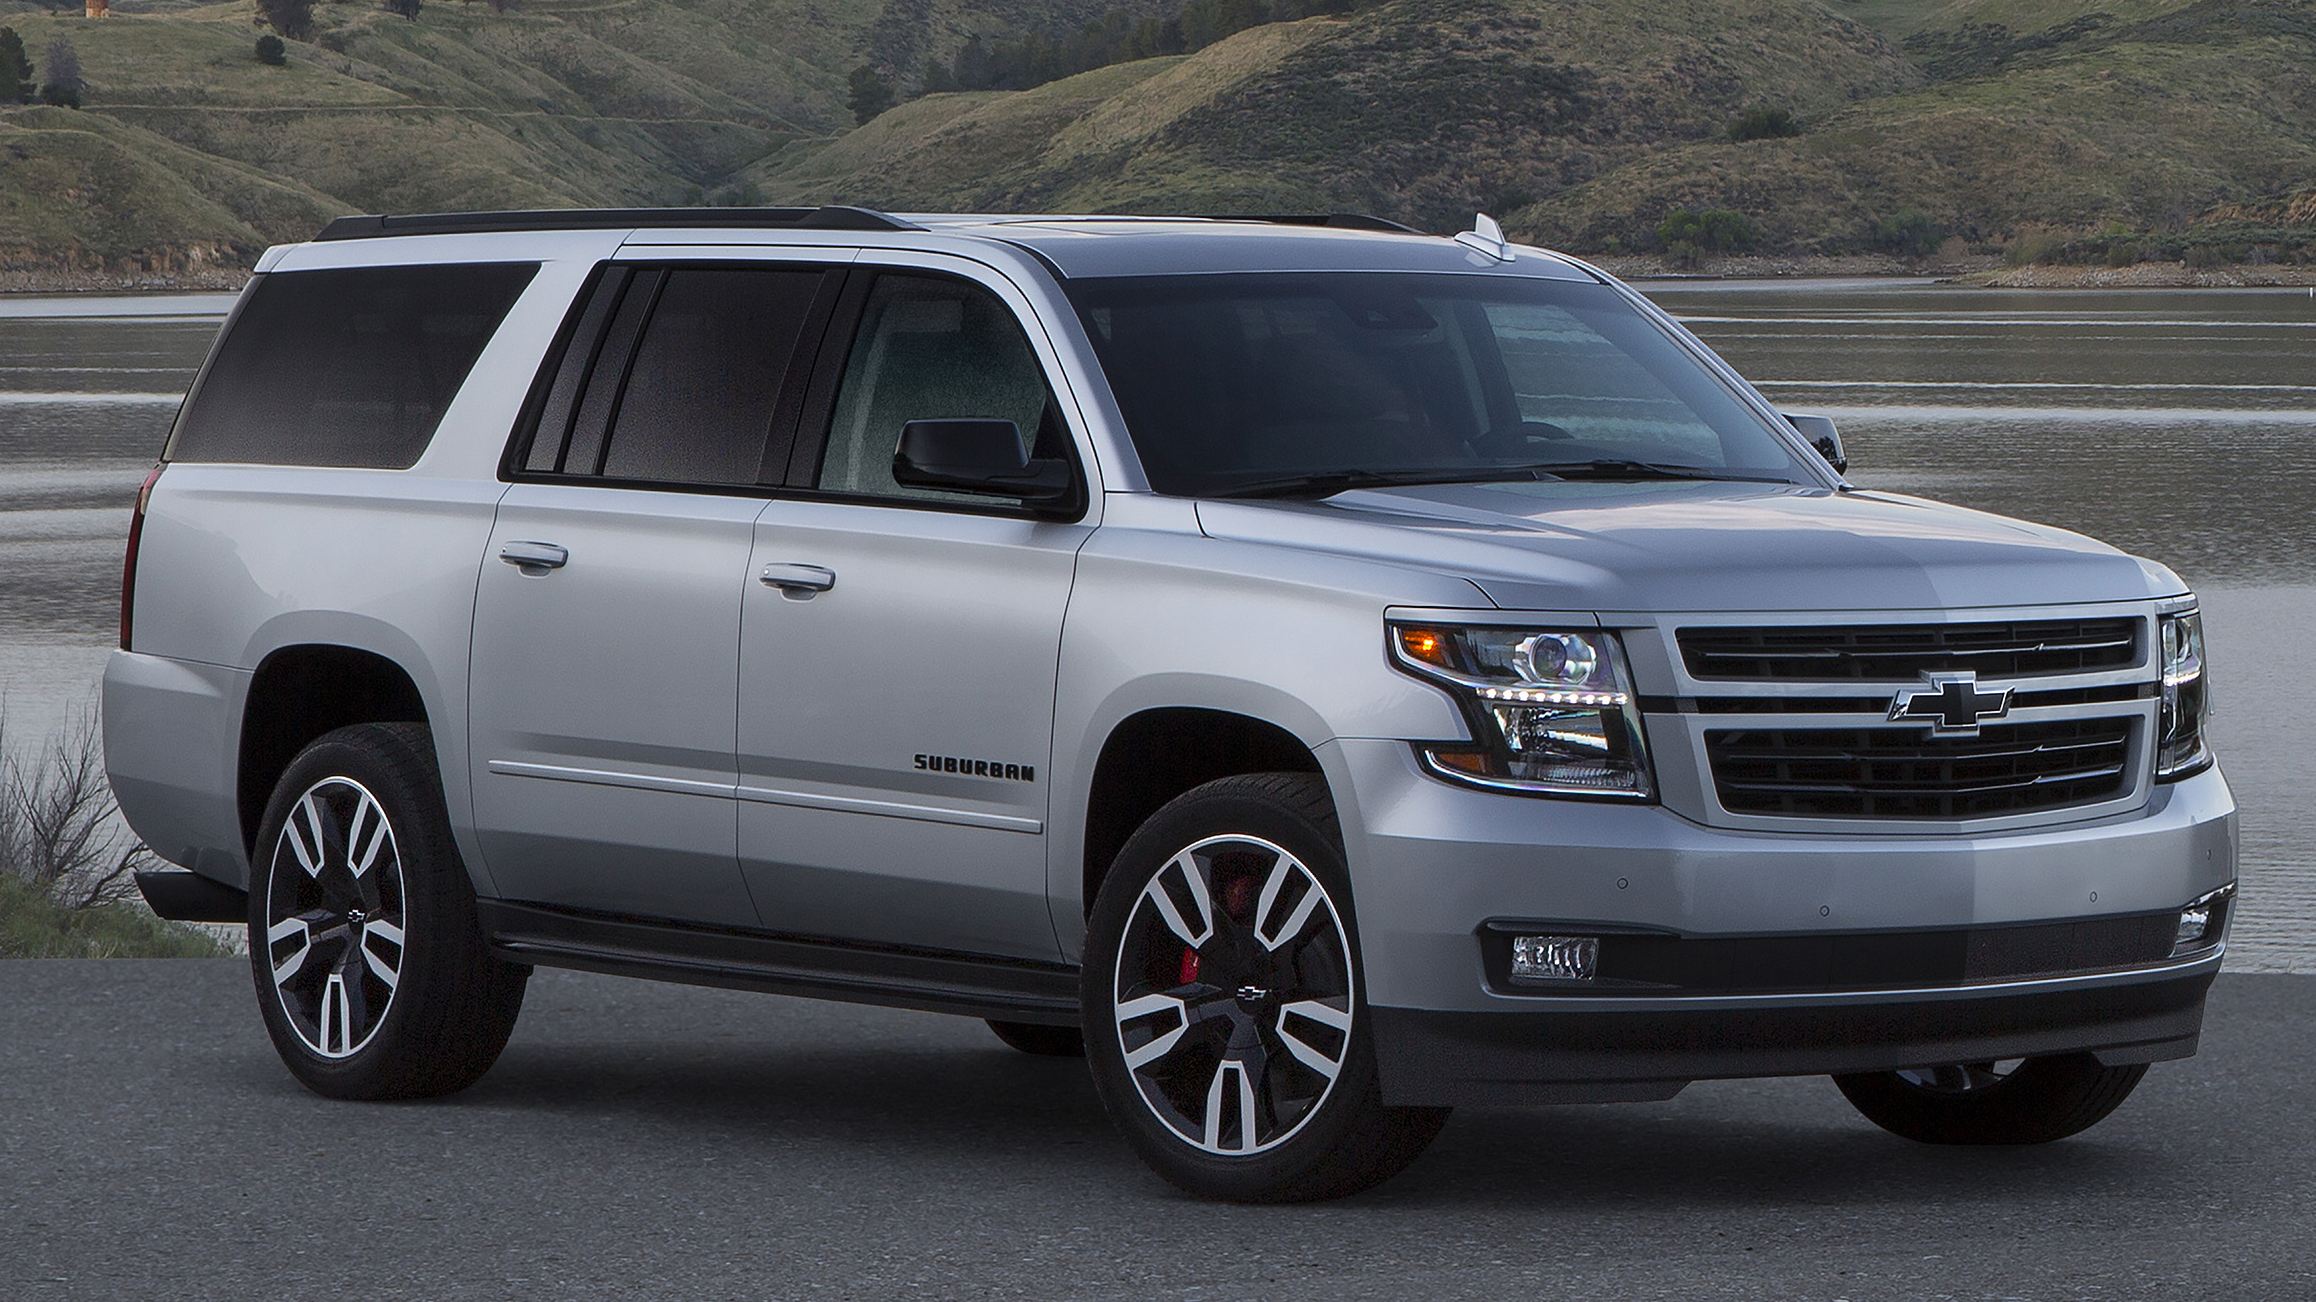 2019 Chevy Suburban RST Performance Package revealed ...